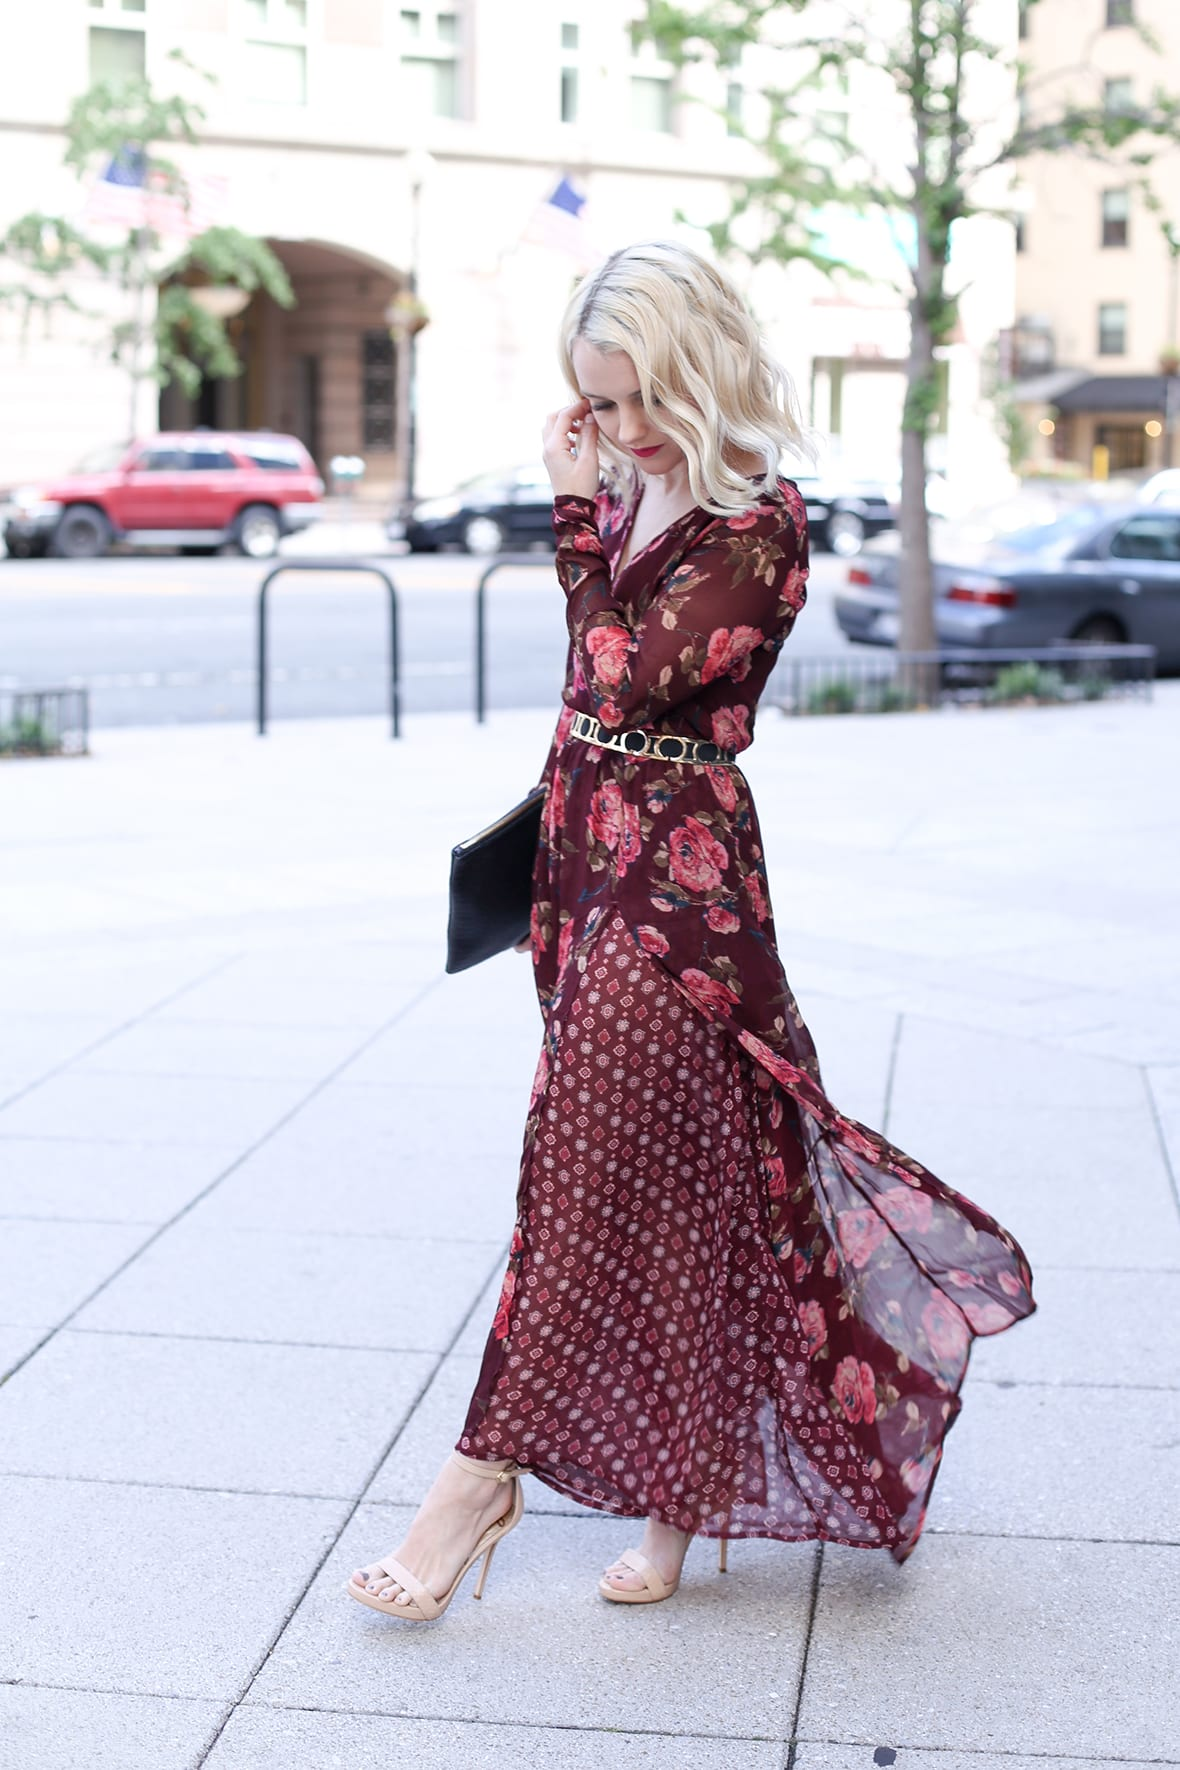 e9a0a320c6ad abercrombie red floral dress